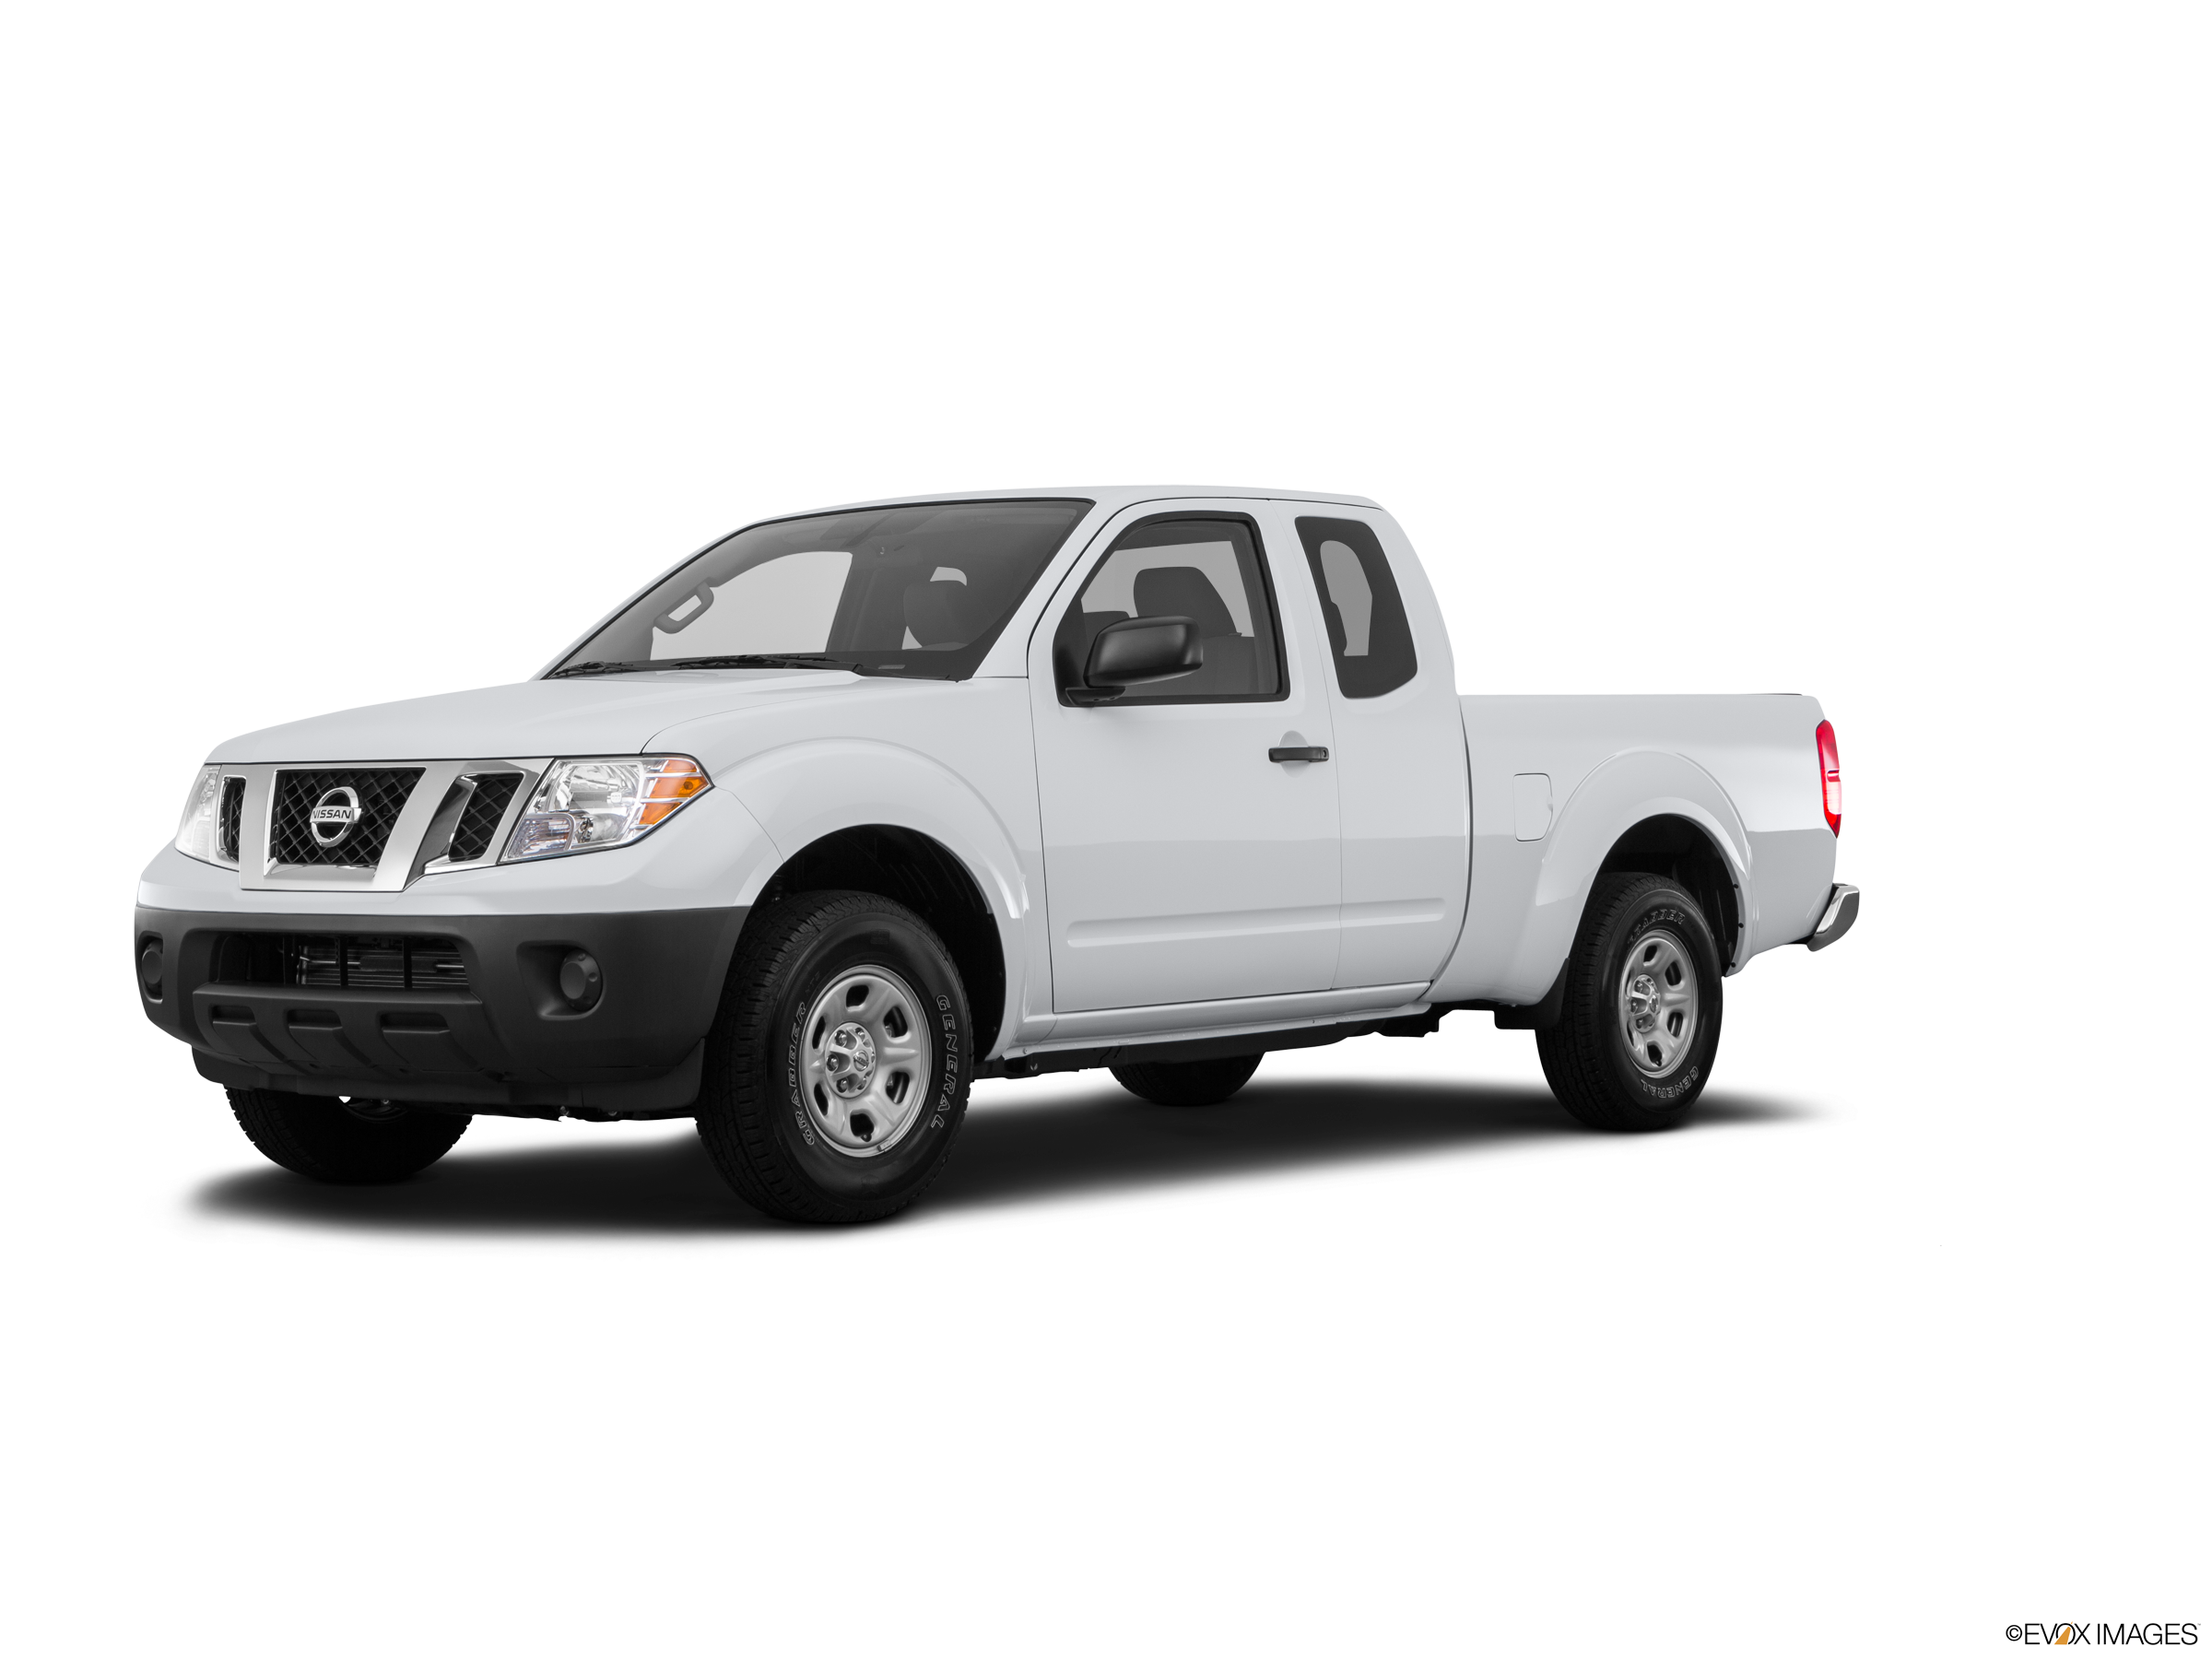 2017 Nissan Frontier Values Cars For Sale Kelley Blue Book